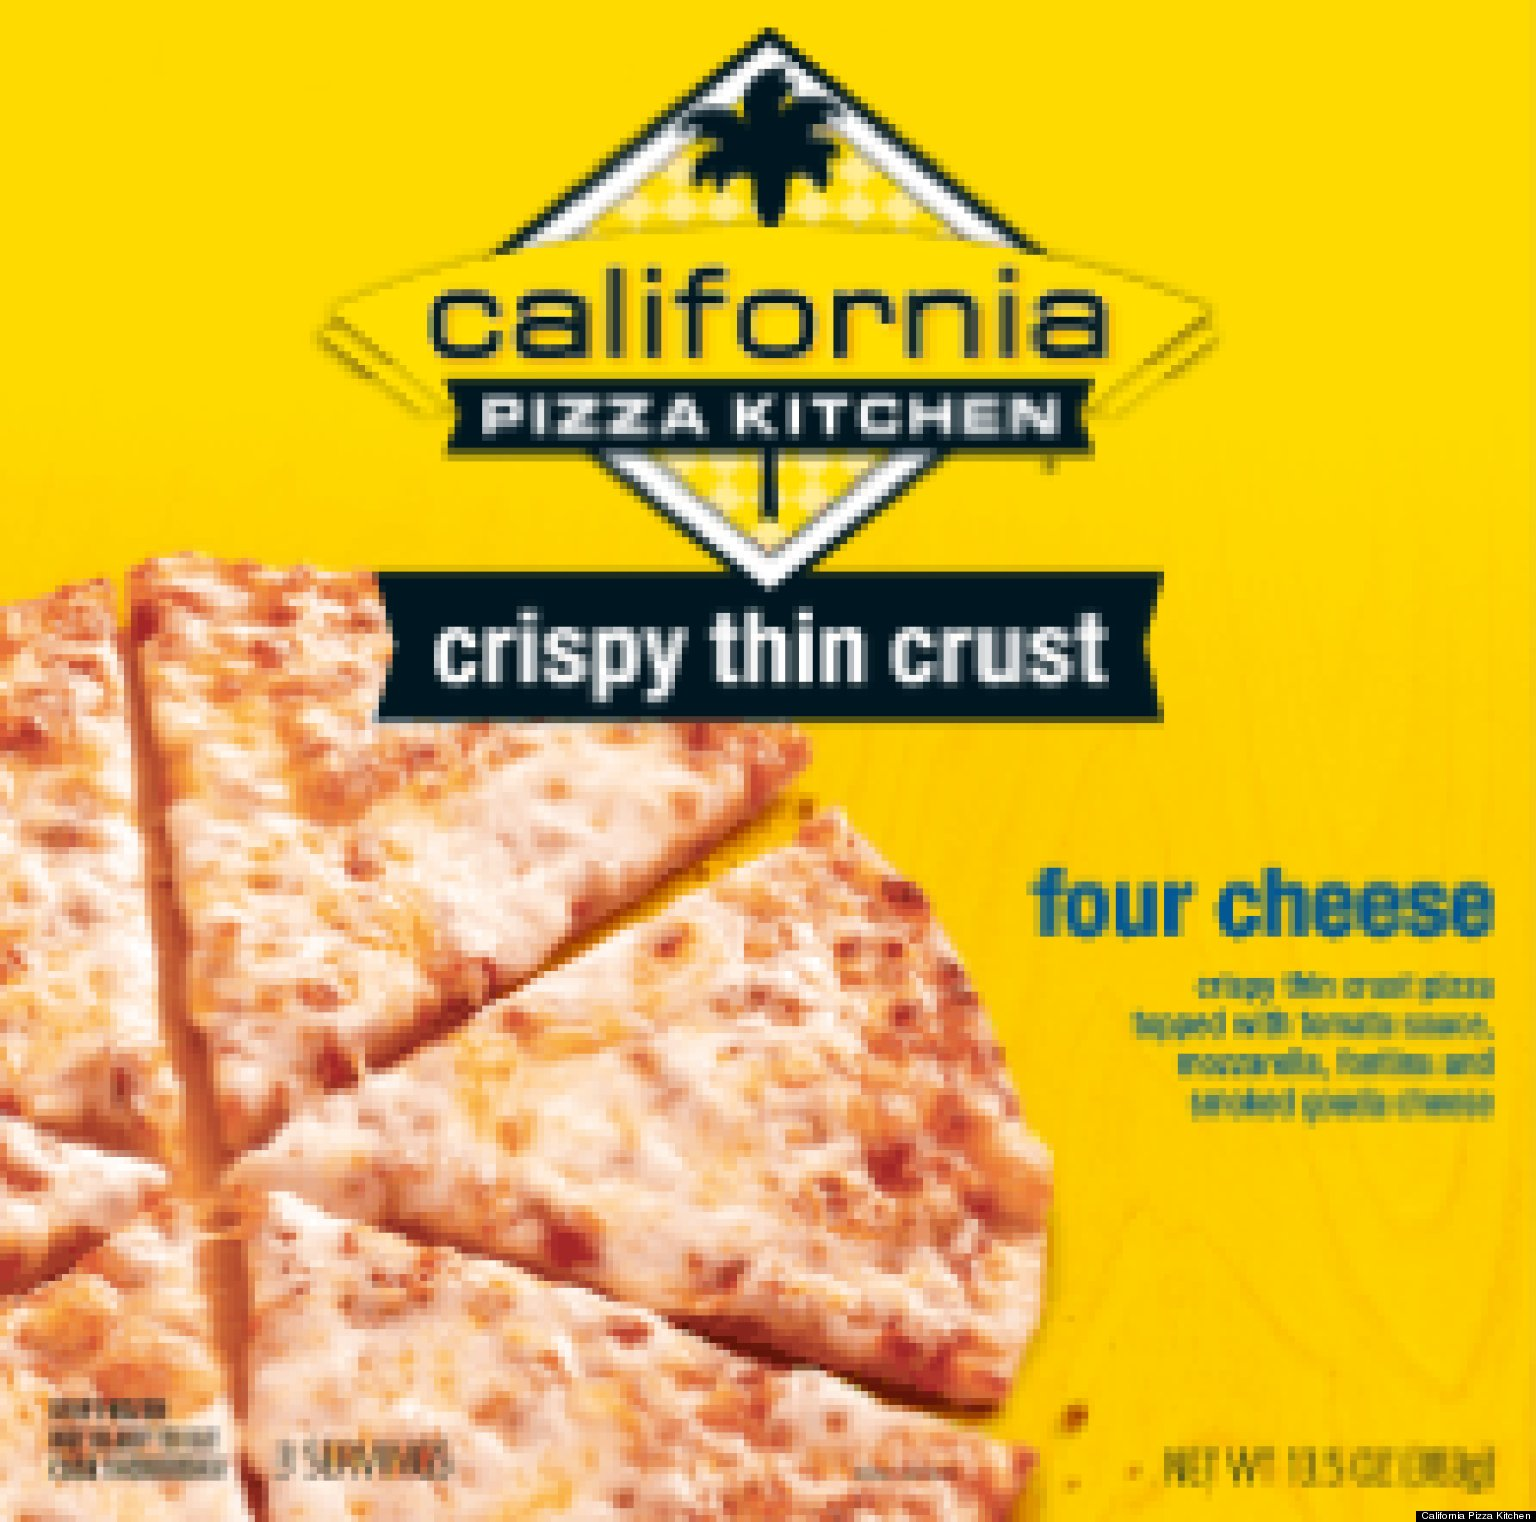 nestle california pizza kitchen are poisoning consumers woman